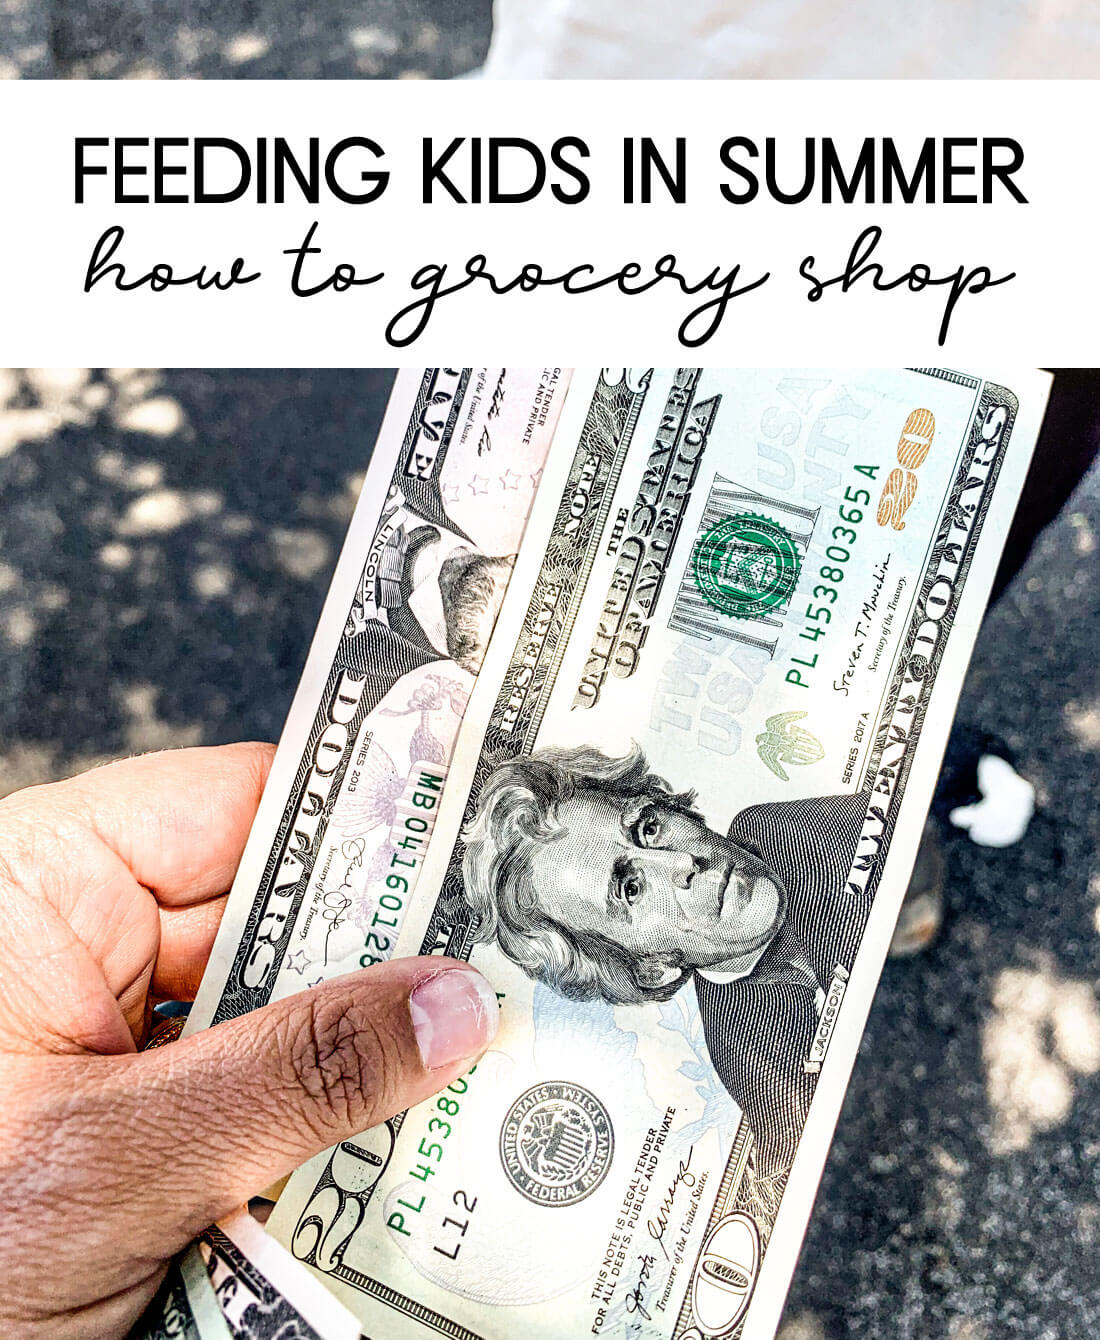 Feeding Kids in Summer - teaching how to grocery shop